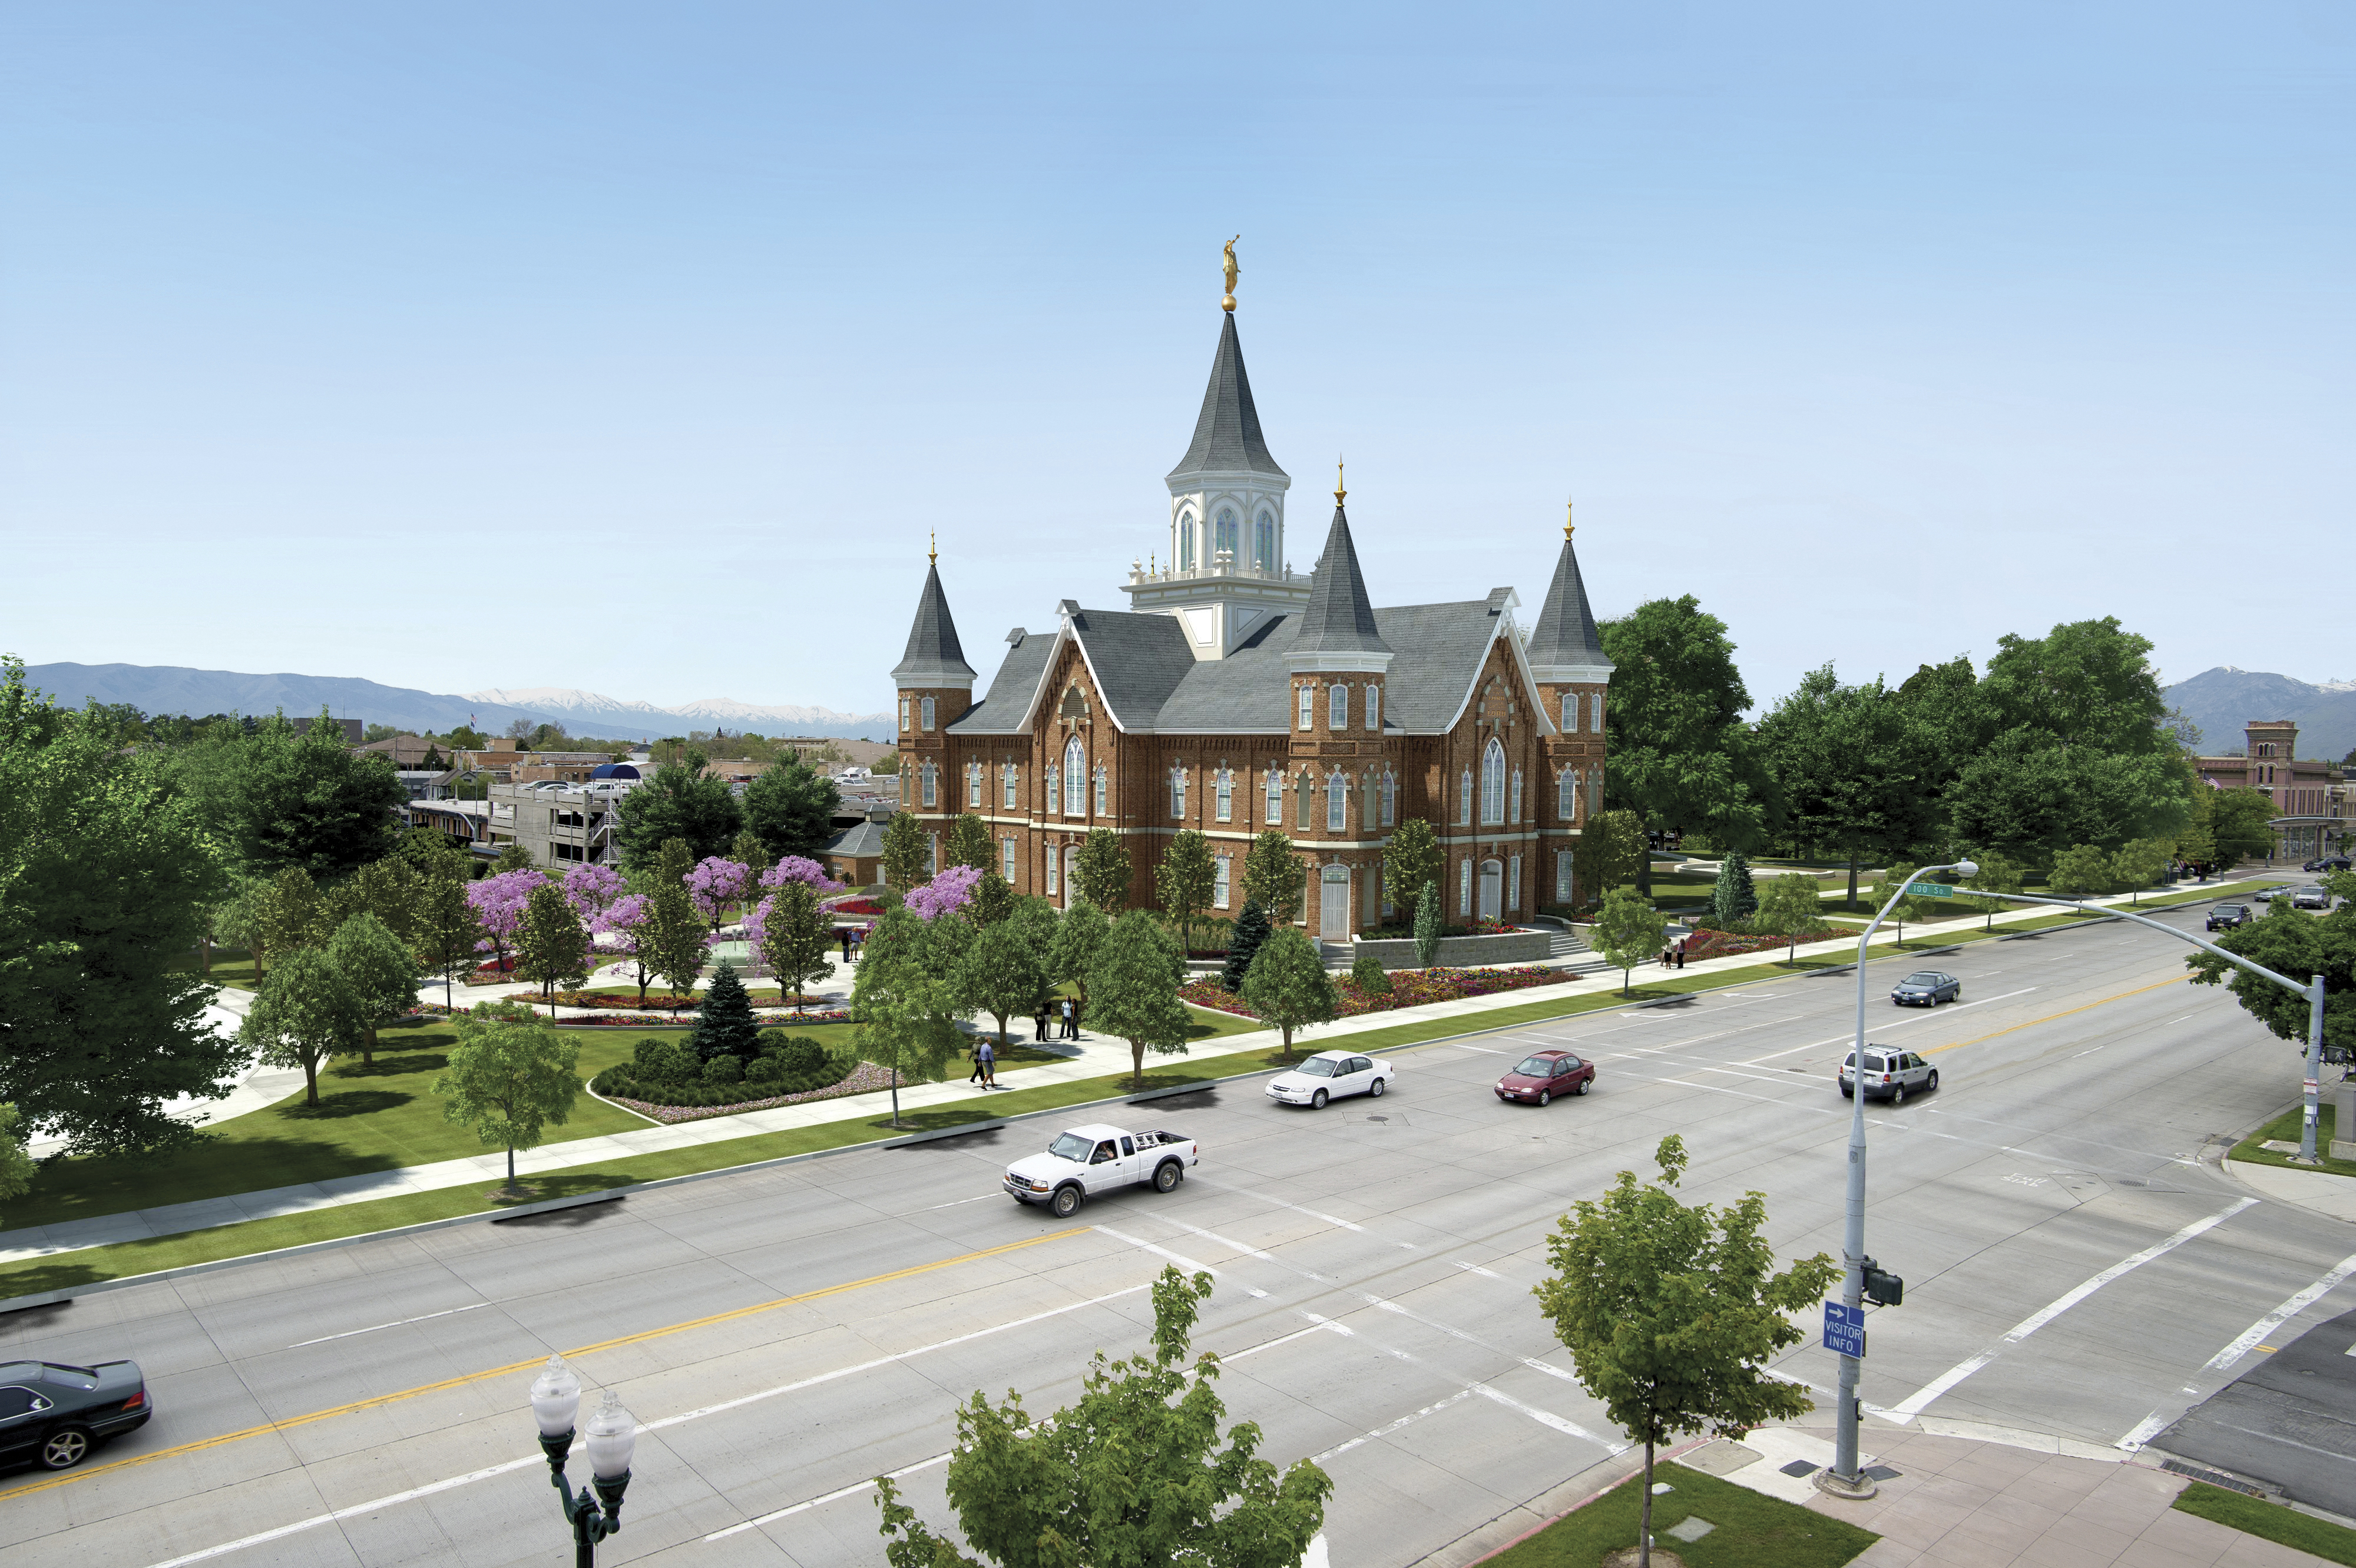 An artist's rendition of the Provo City Center Temple, including scenery.